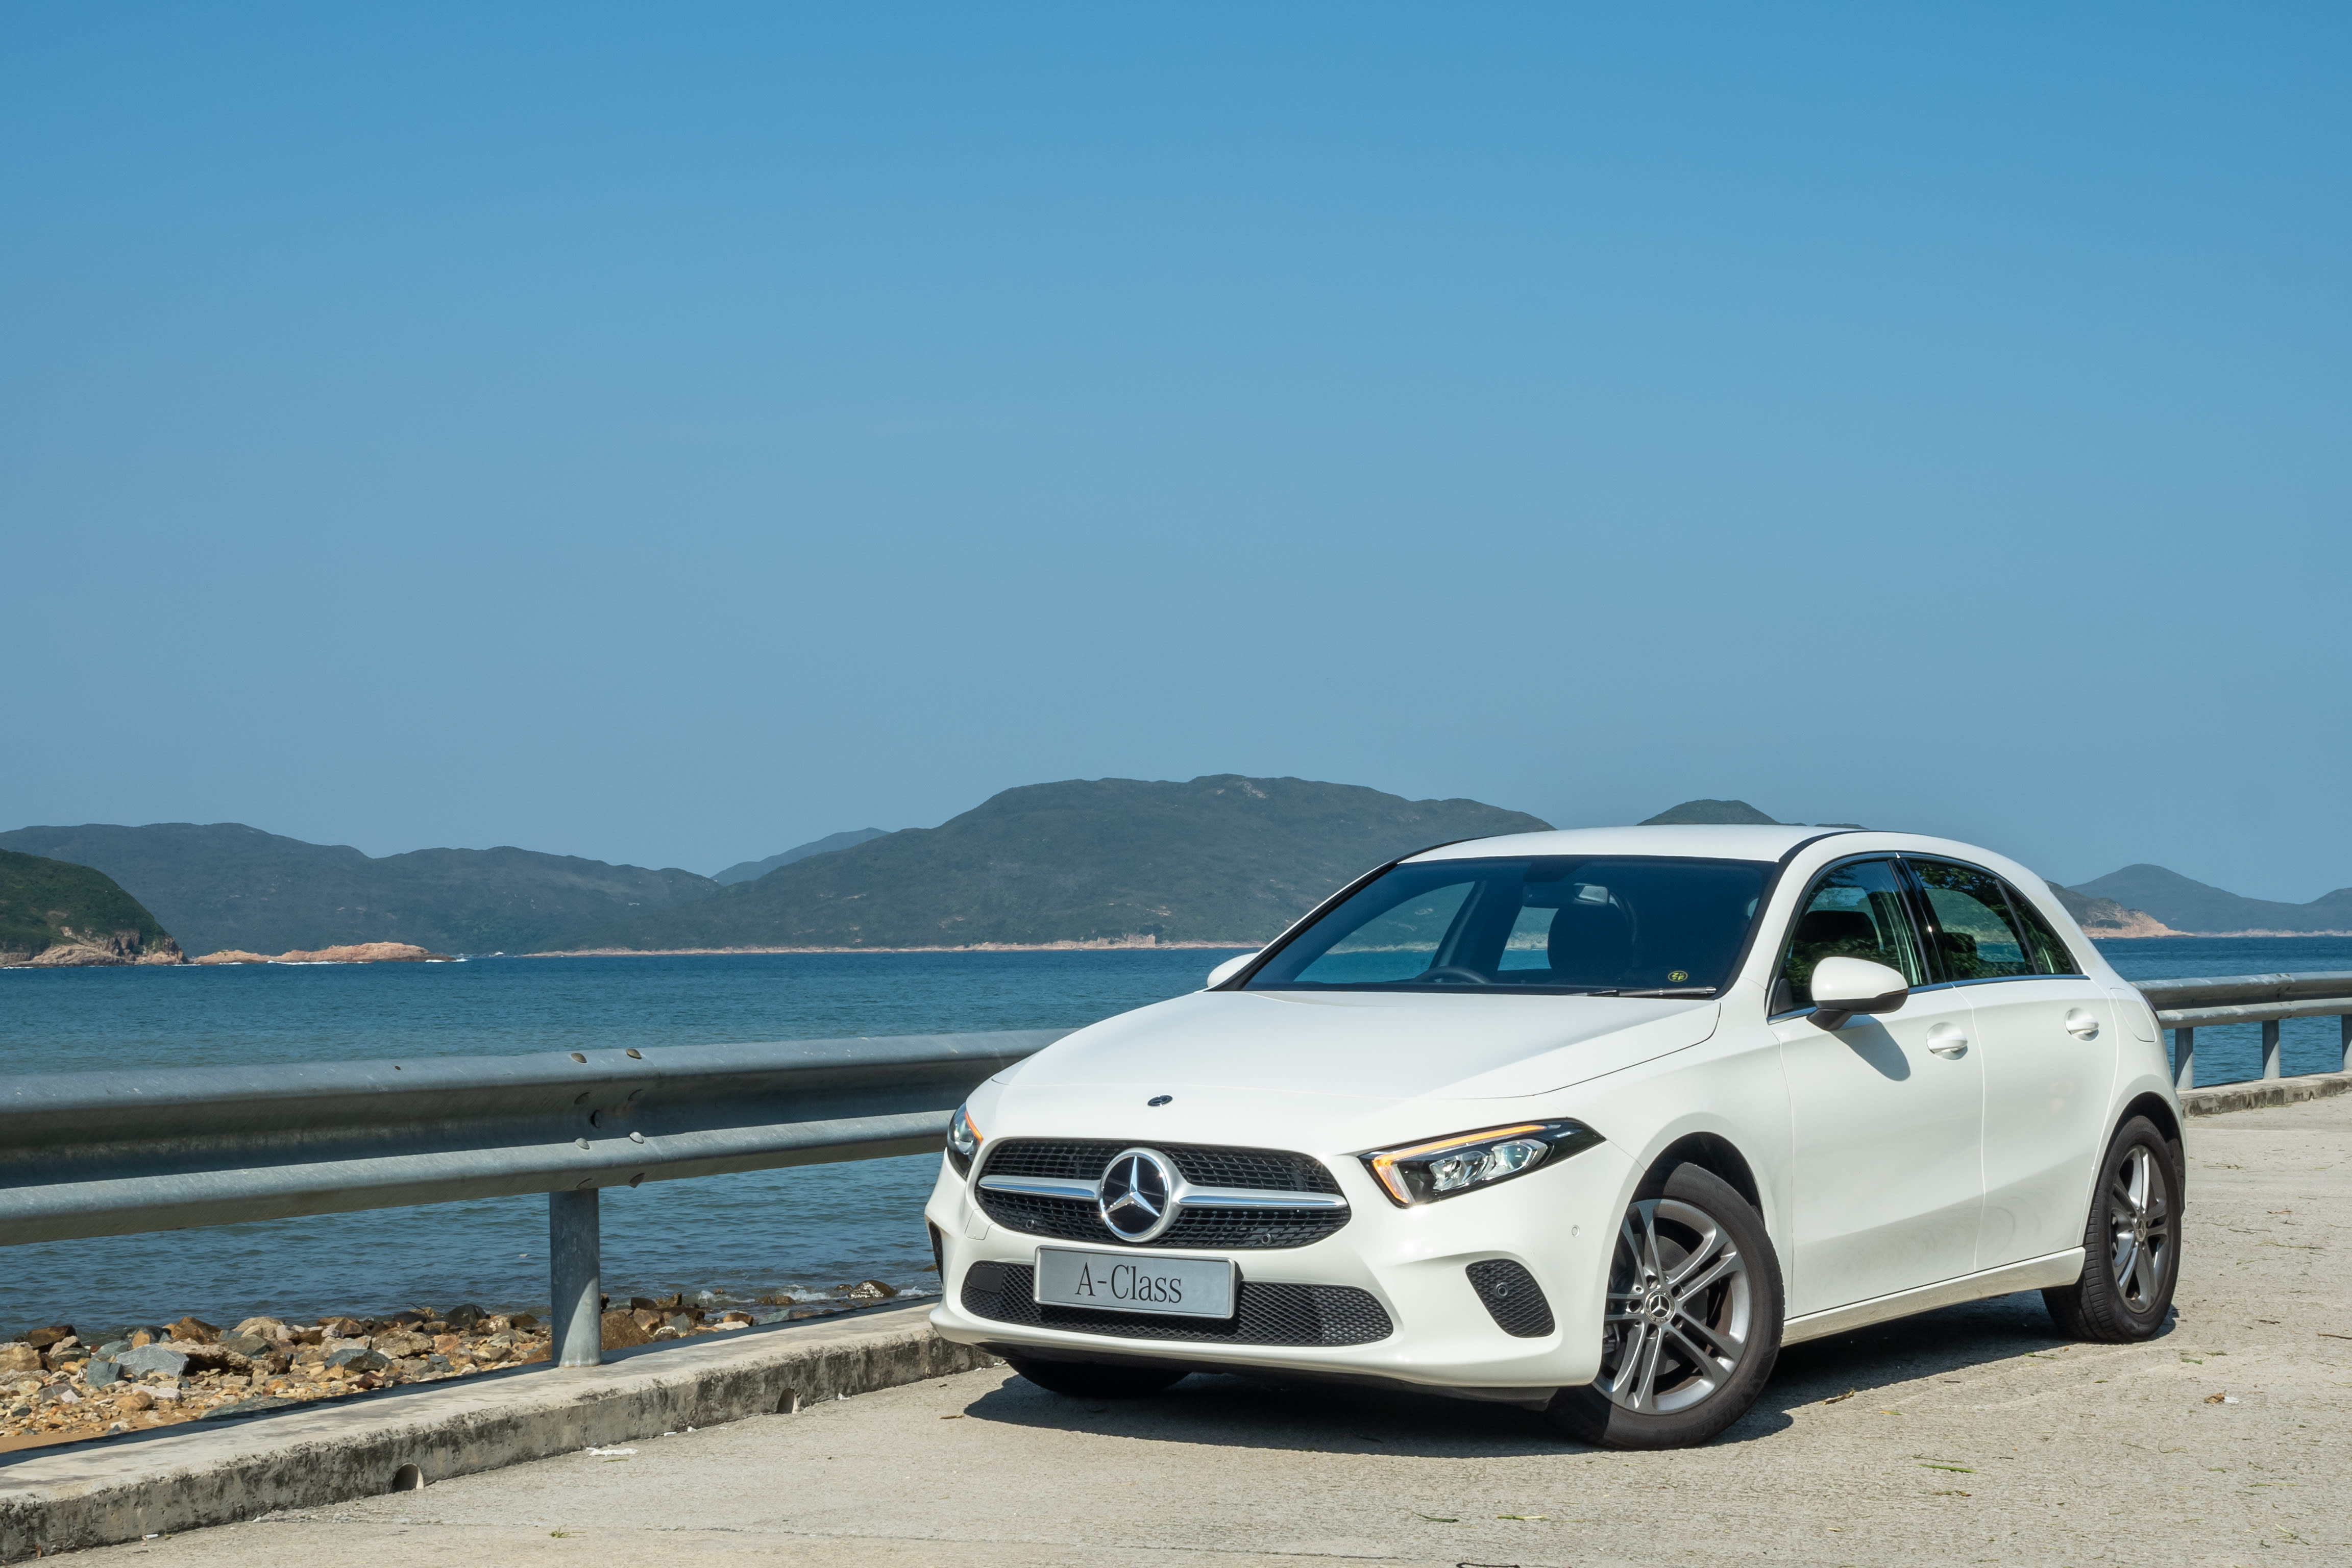 Mercedes-Benz recalls A-class sedans over water damage risk